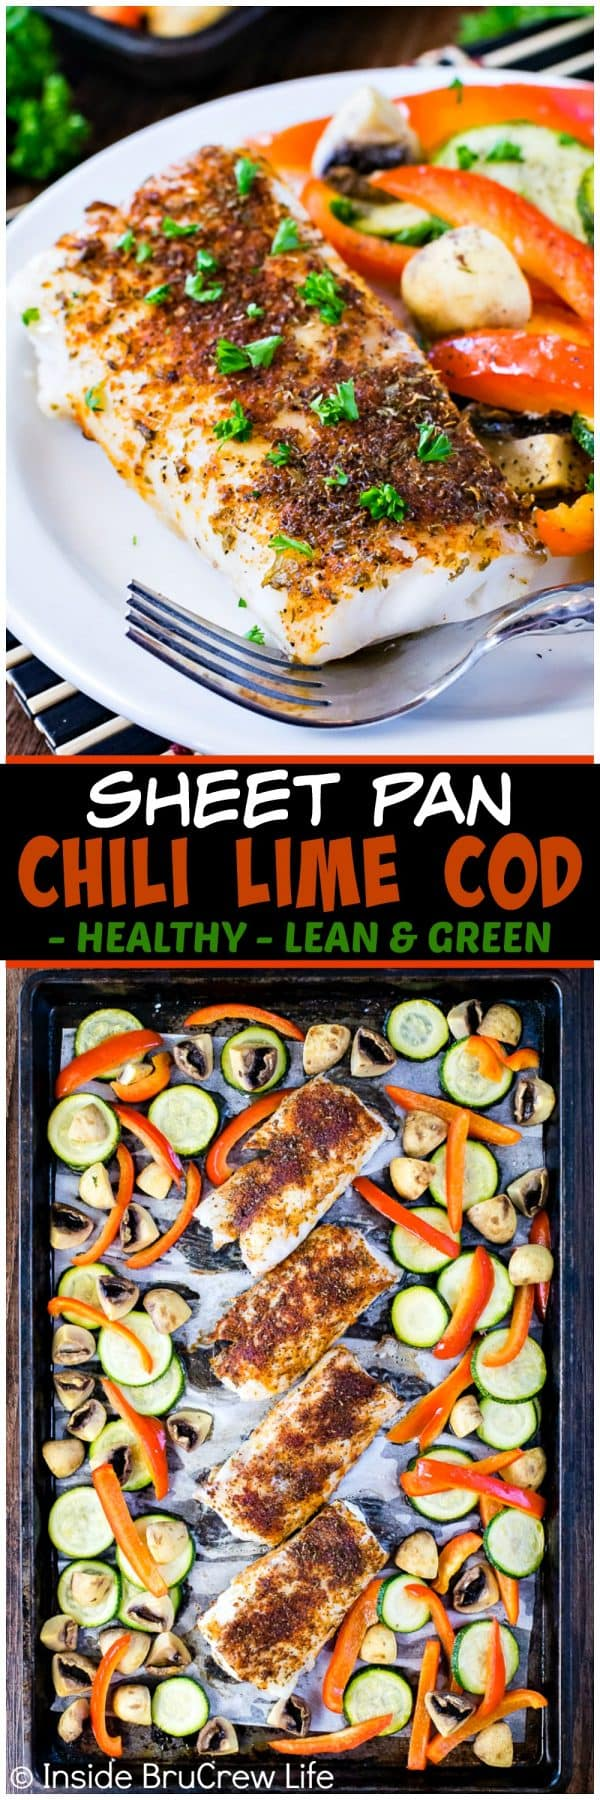 Sheet Pan Chili Lime Cod - roasted veggies and a chili rub adds a fun flavor to this easy and healthy fish dinner. Perfect lean and green recipe that can be on your table in under 30 minutes.